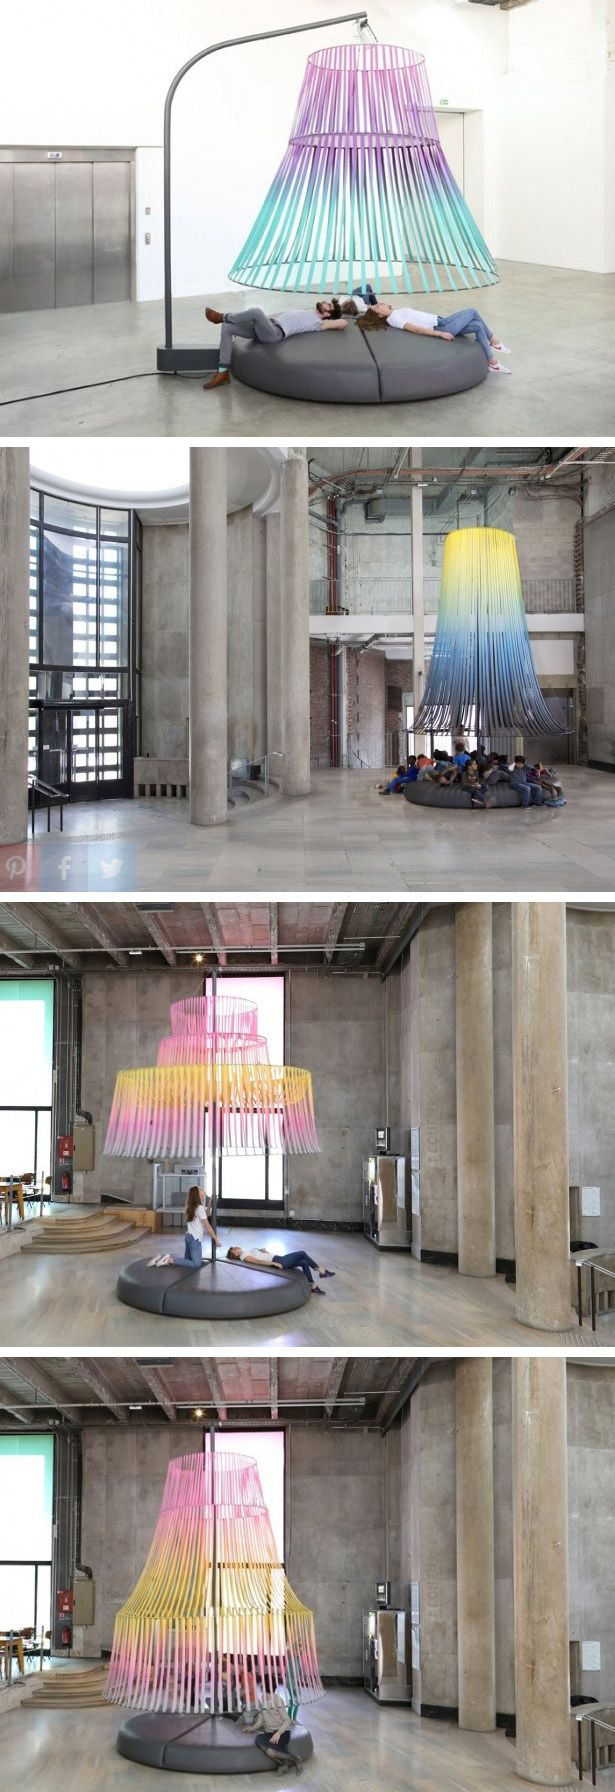 Constance Guisset designed a collection of seating named Three Conversations for Palais de Tokyo.